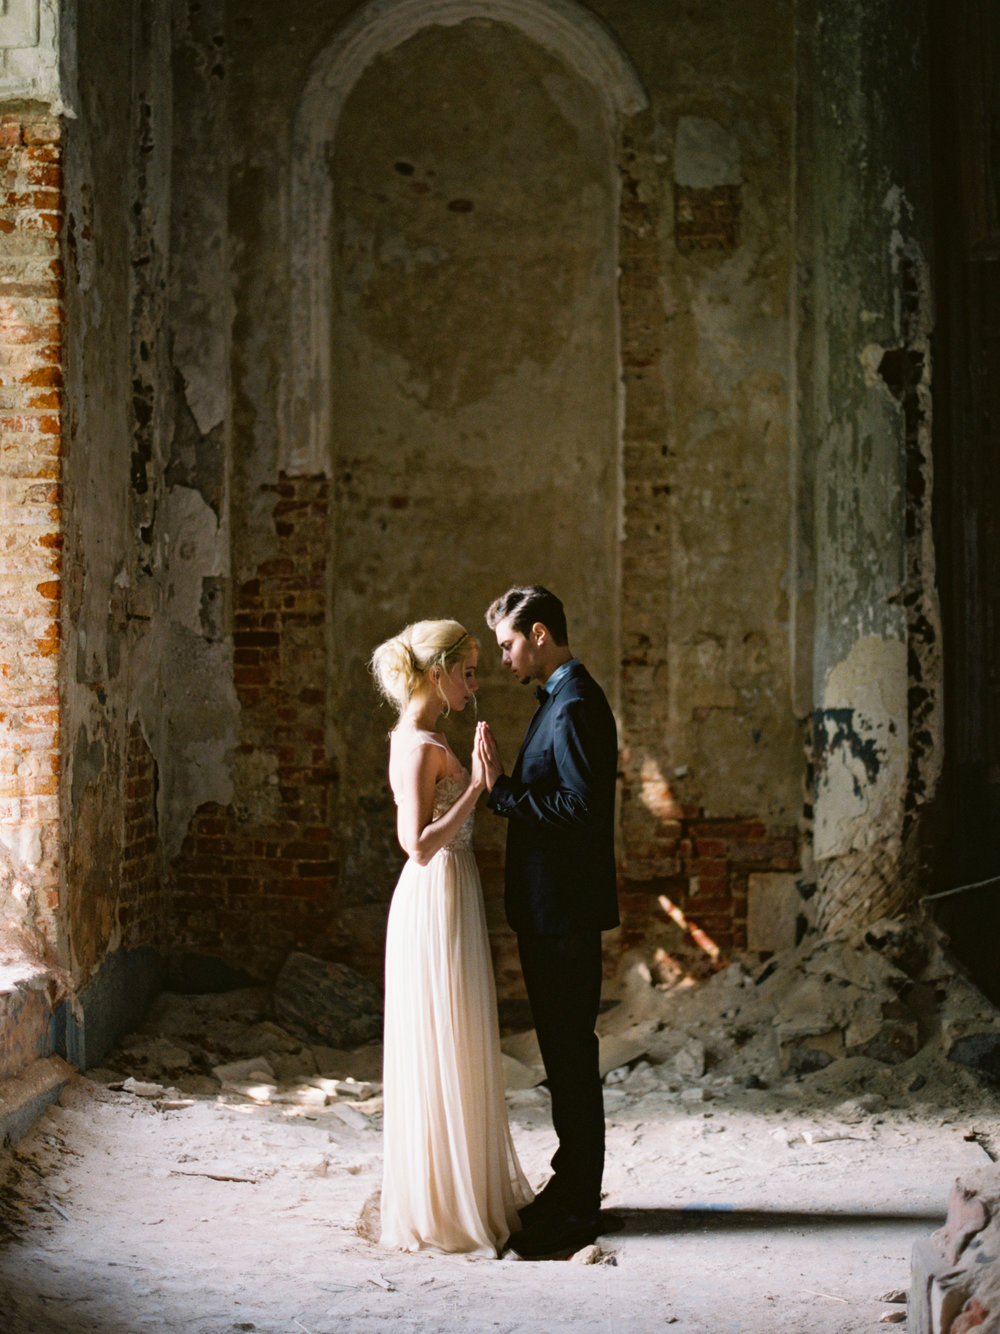 wedding-styled-shoot-russia-inspiration-elena-pavlova-photography-metamorphoses-orpheus-eurydice (38).jpg